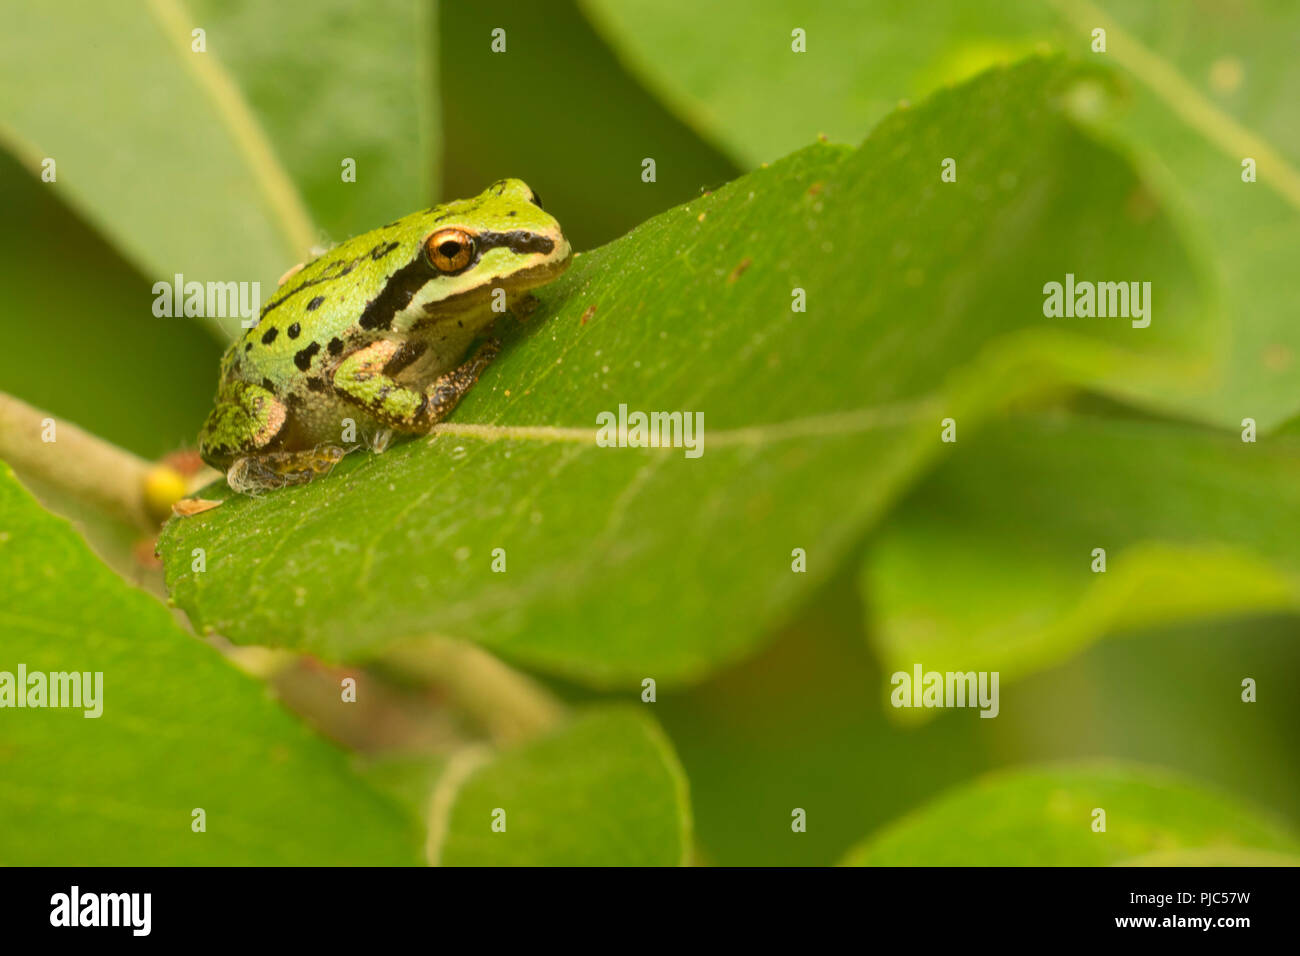 Pacific treefrog at Frog Marsh, Ankeny National Wildlife Refuge, Oregon - Stock Image